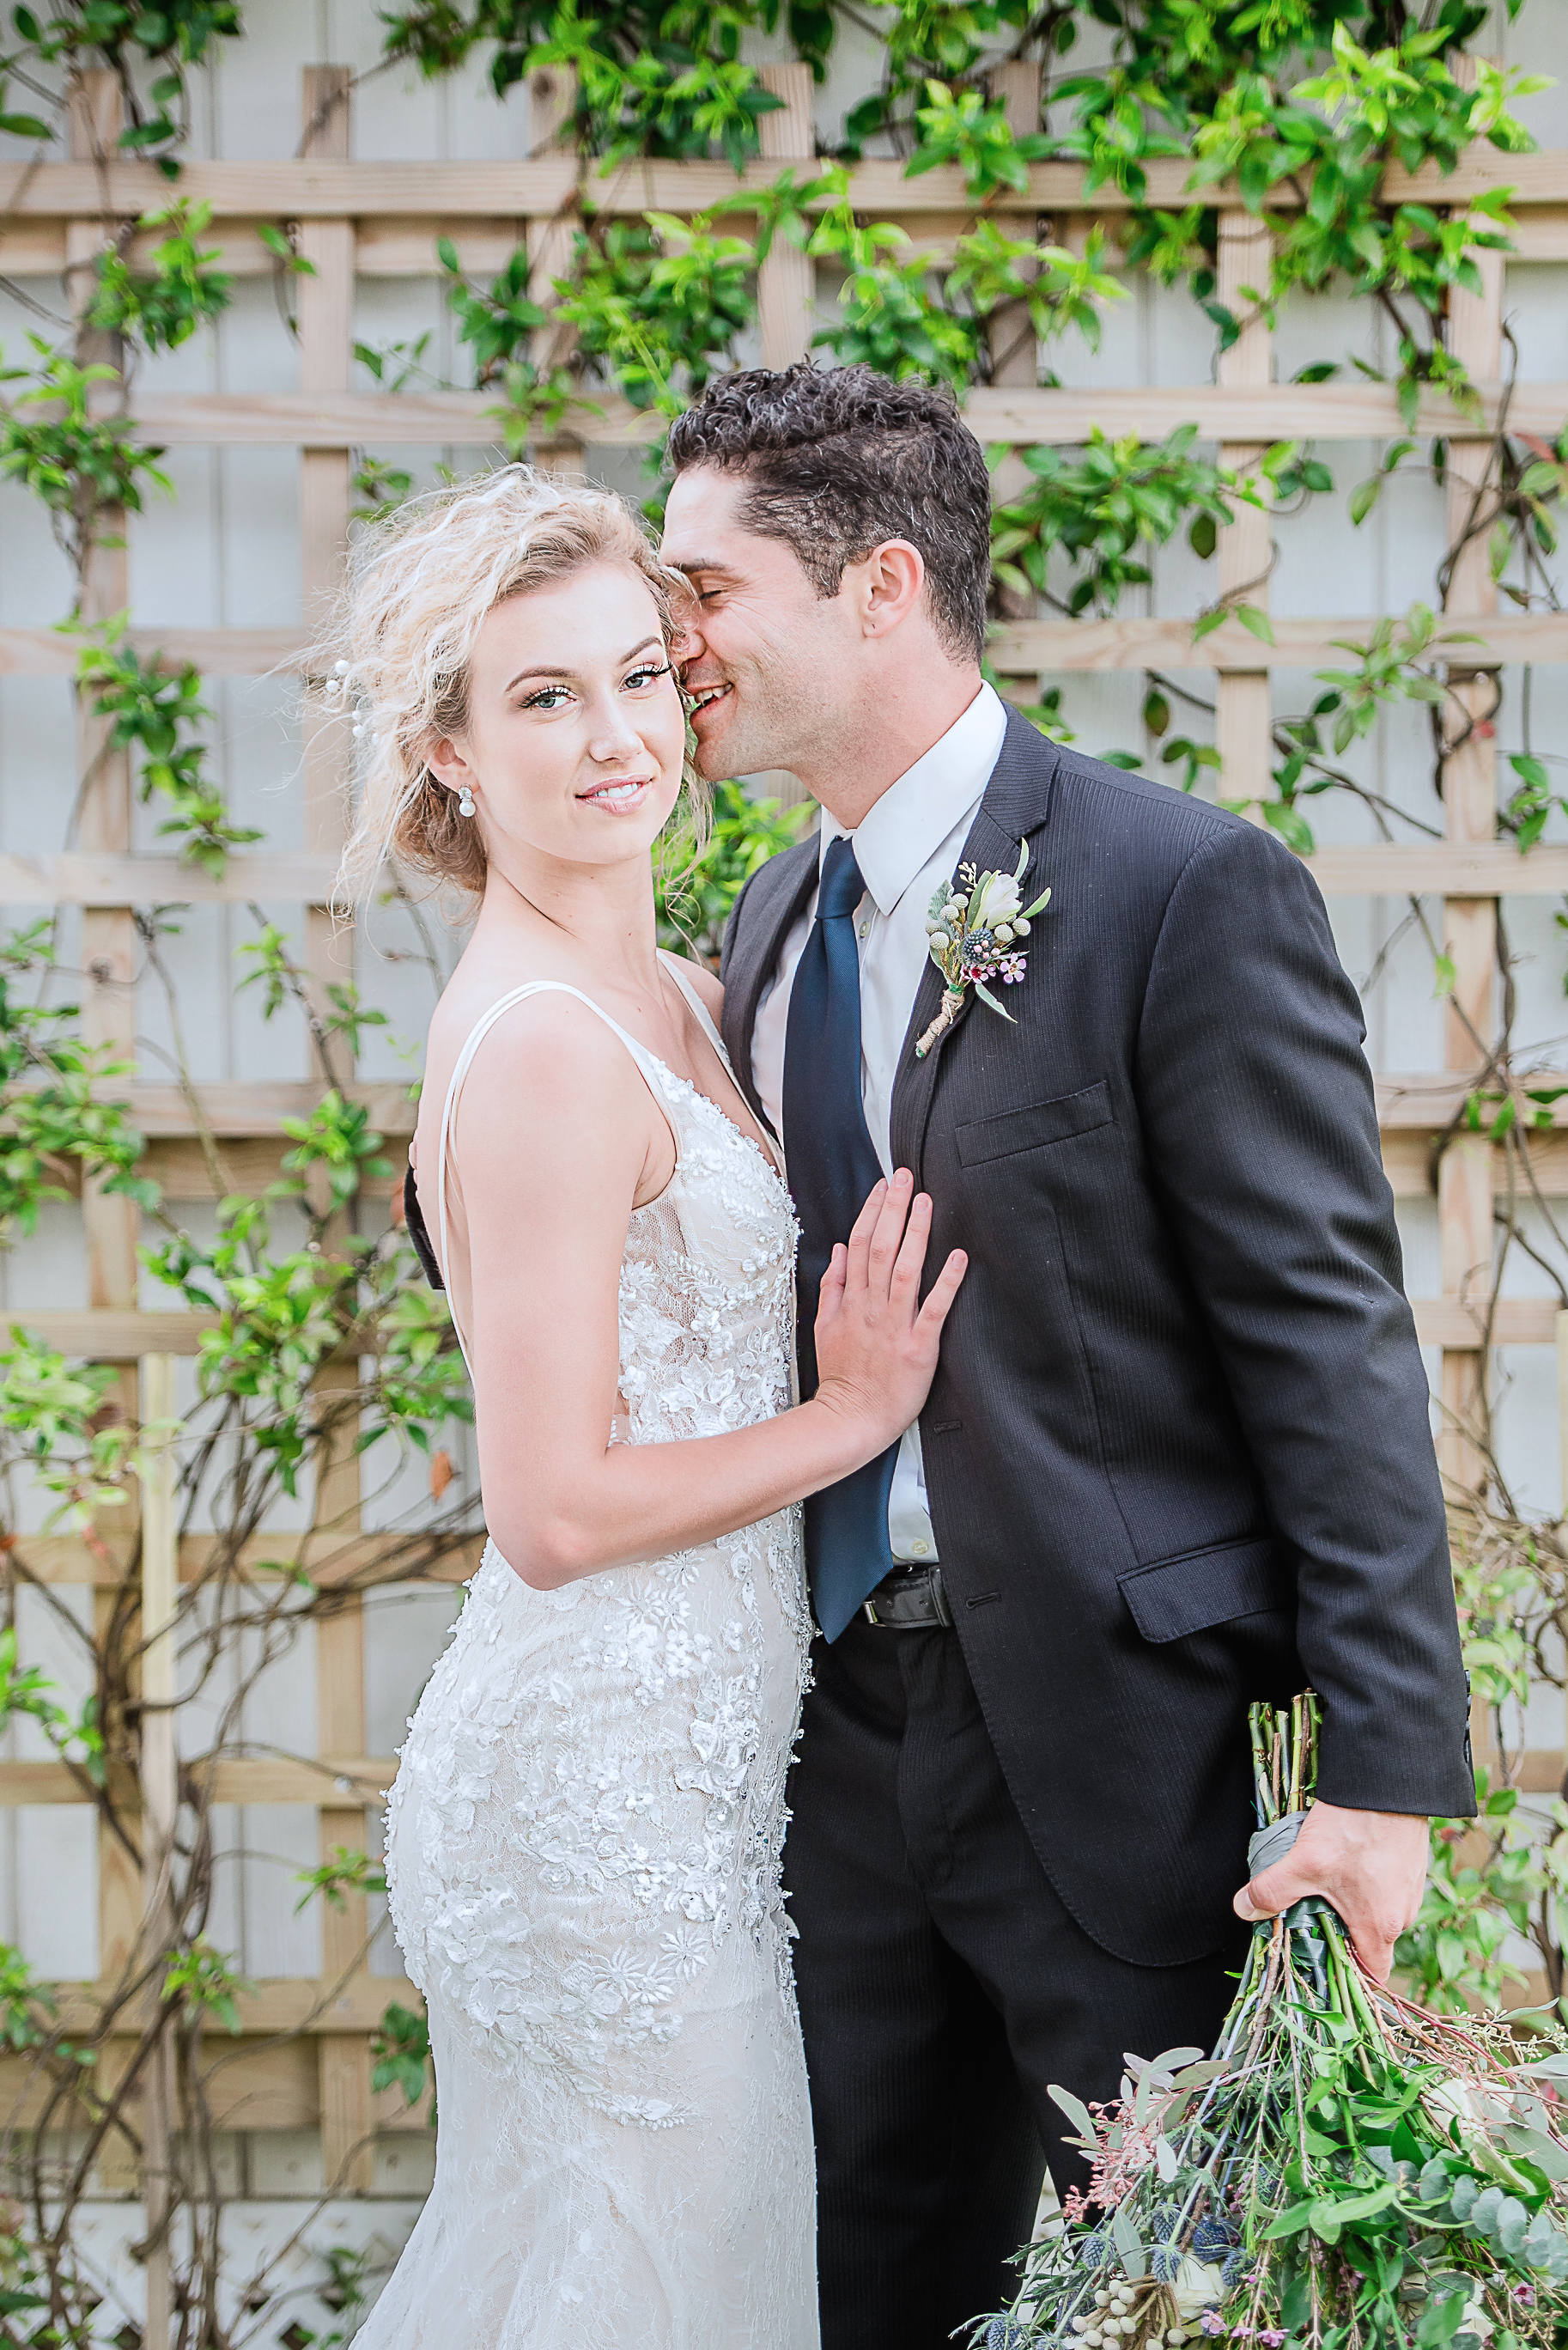 custom made wedding dress under $1000 peach toned wedding gown mermaid fit and court train